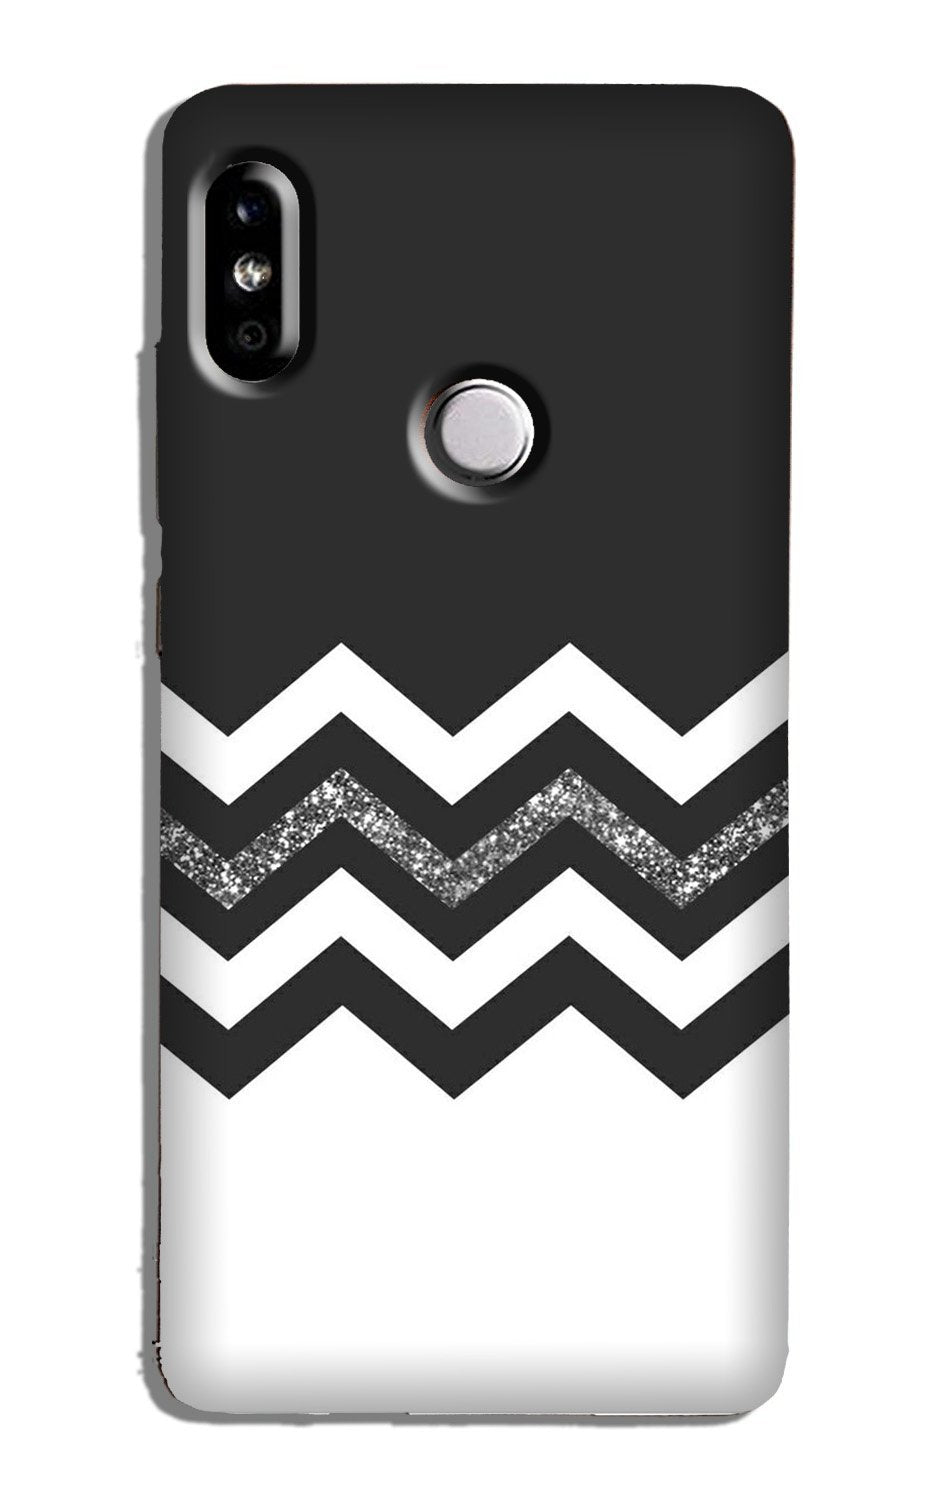 Black white Pattern Case for Redmi Note 5 Pro